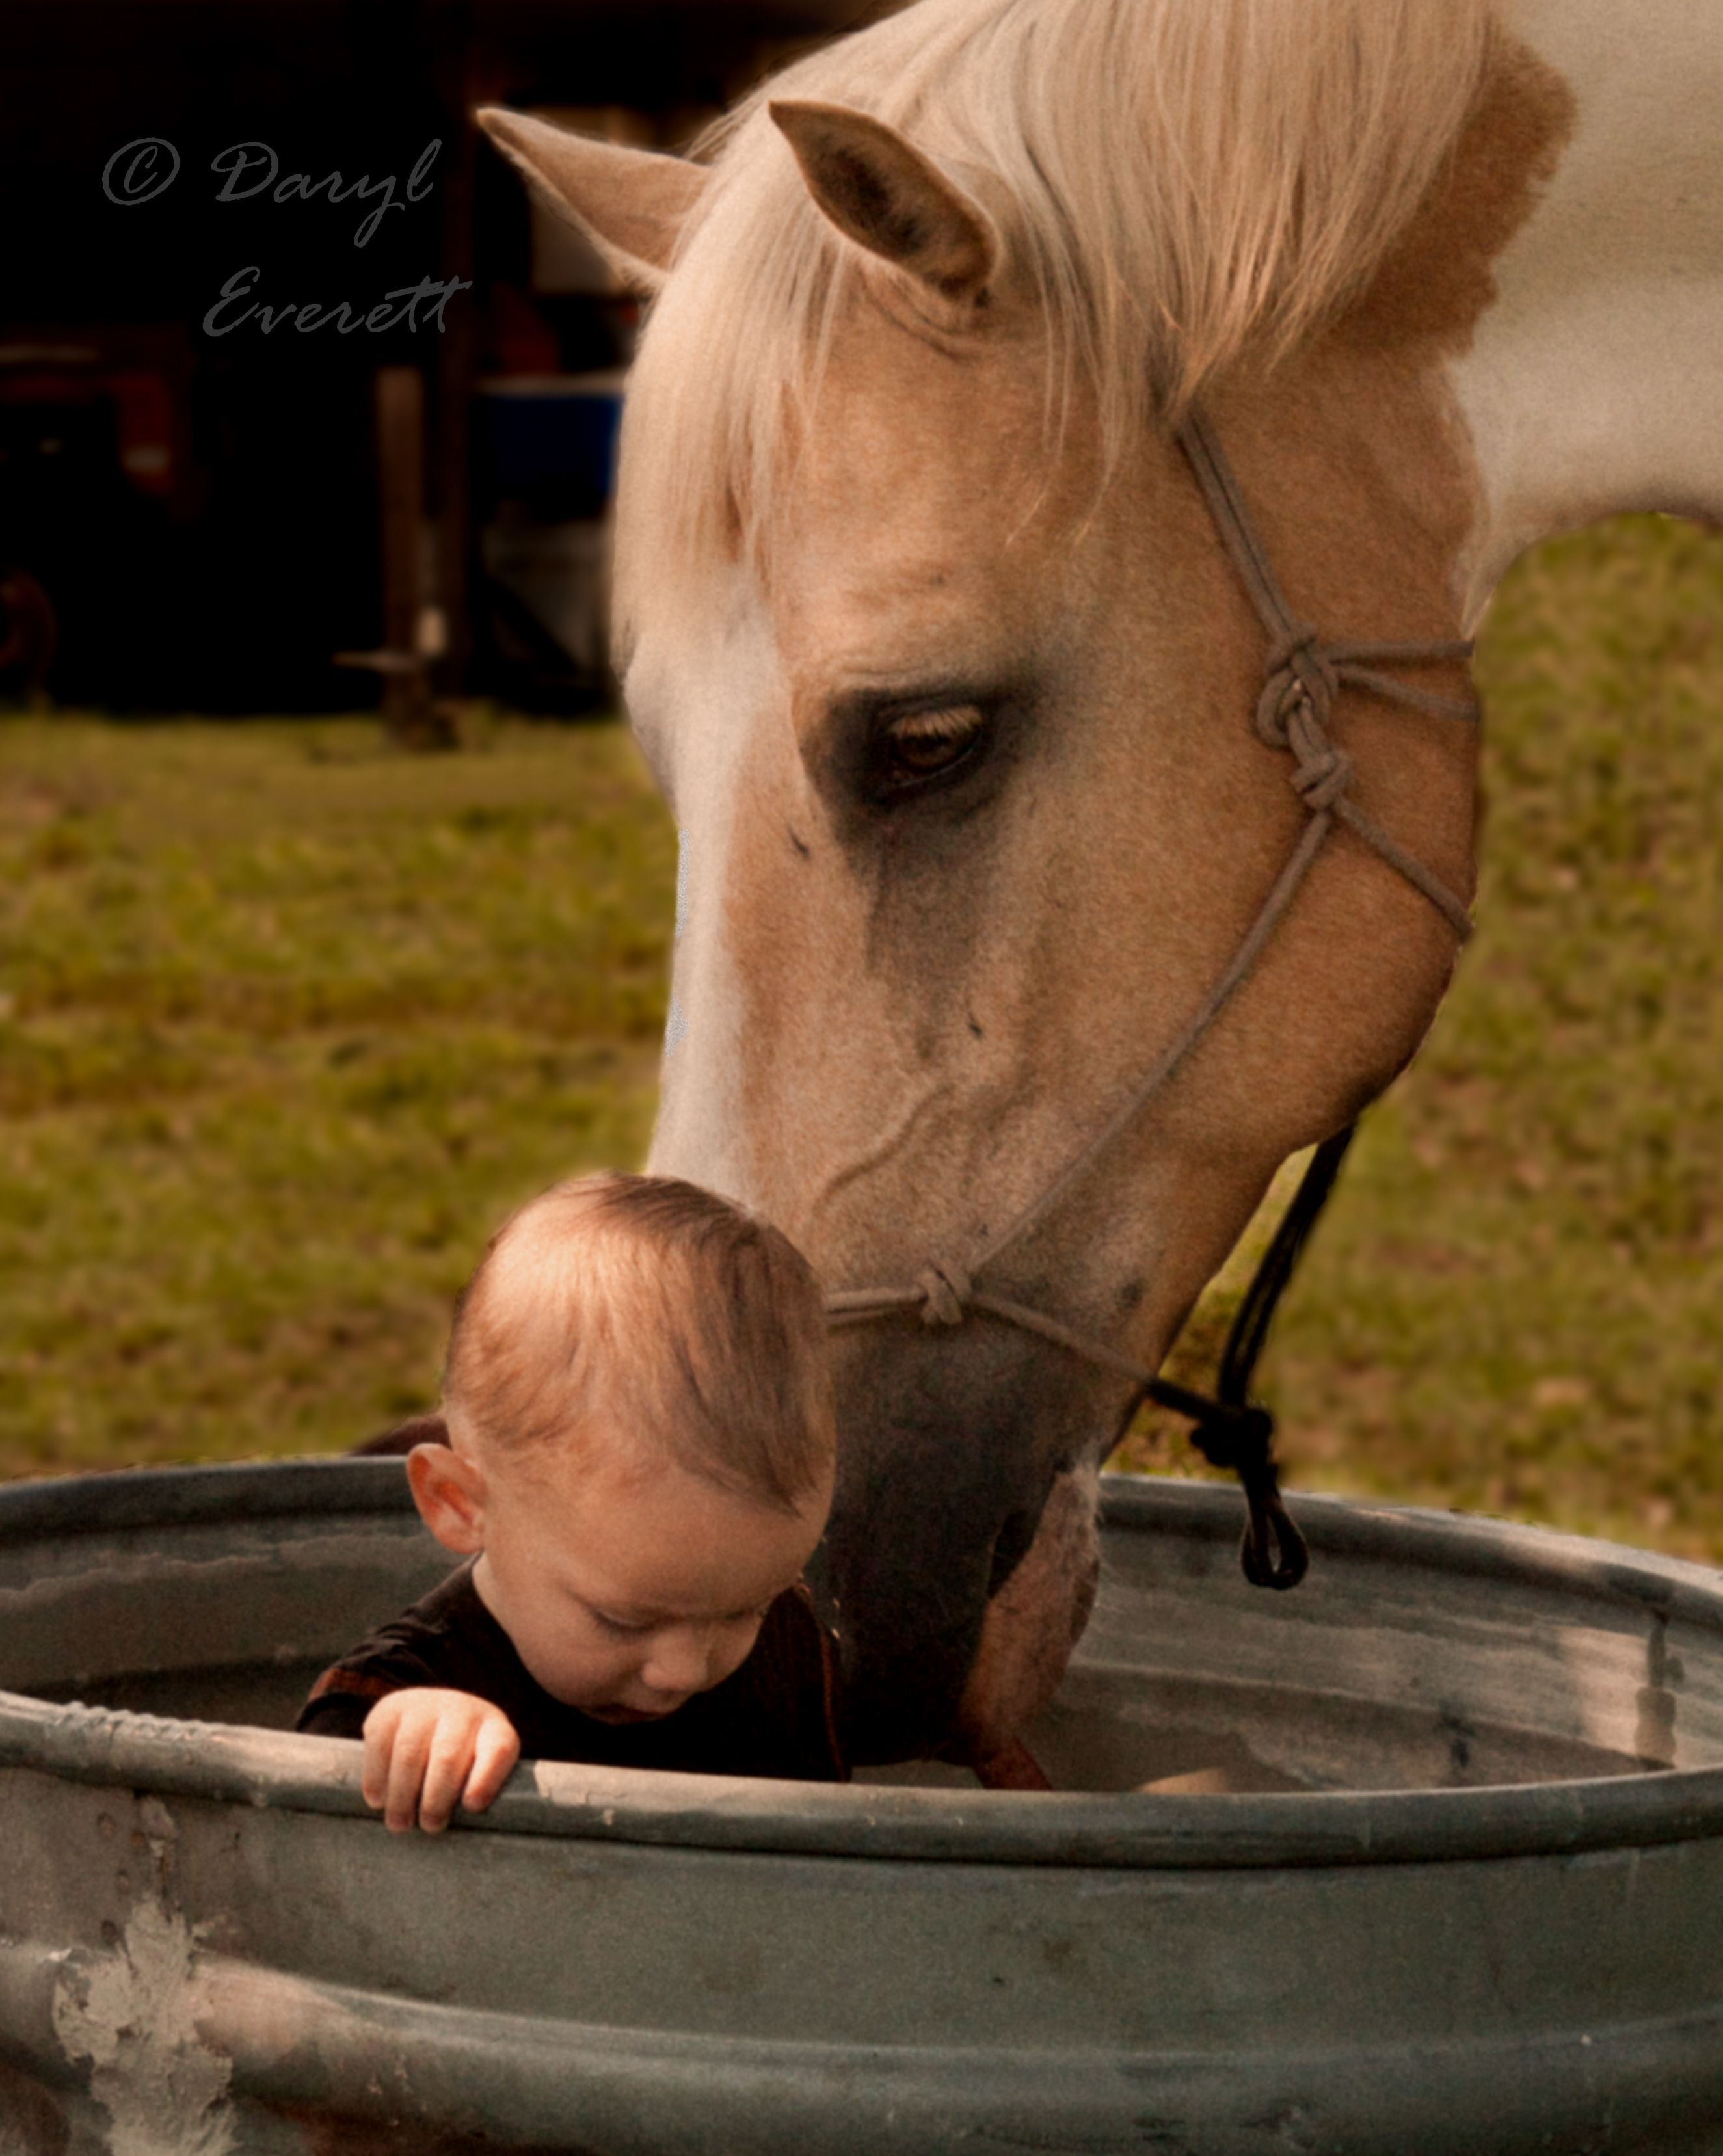 A boy and a horse {Jacksonville Child Photographer} #i'mthirsty I'm thirsty #i'mthirsty A boy and a horse {Jacksonville Child Photographer} #i'mthirsty I'm thirsty #i'mthirsty